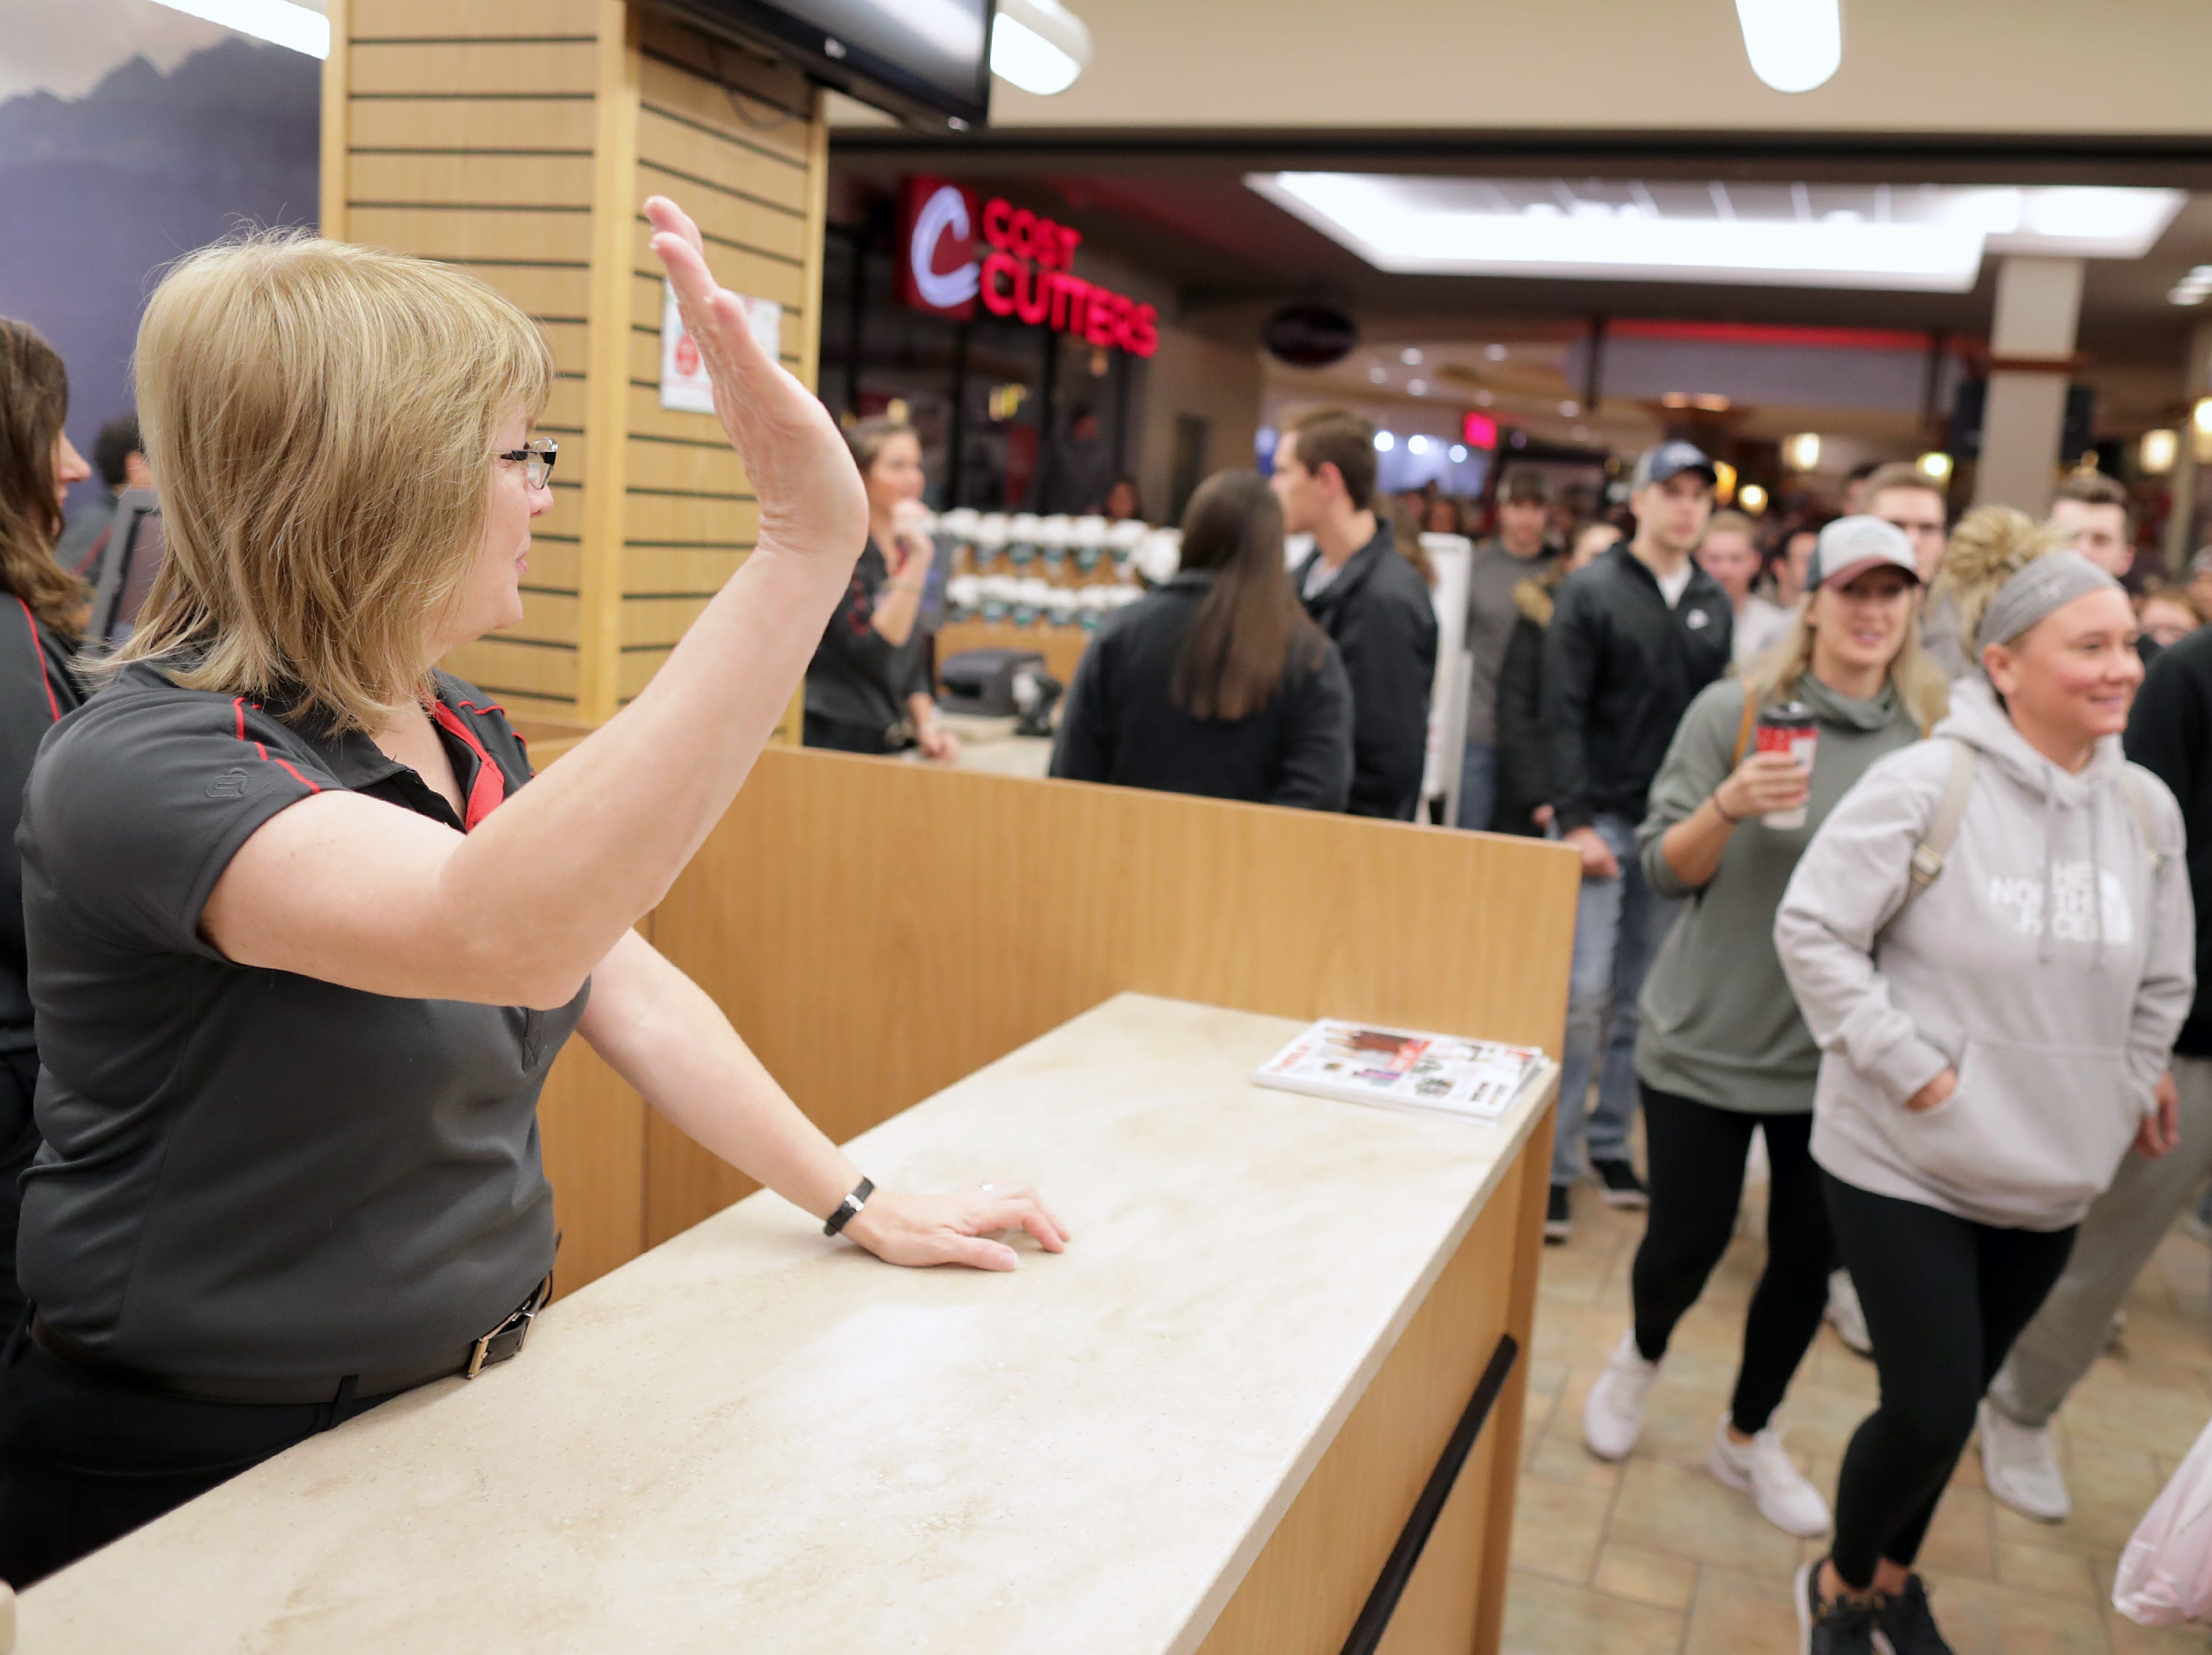 Dawn Hendrickson waves to shoppers looking for Black Friday deals at Scheels on Friday, Nov. 23, 2018 in Grand Chute, Wis